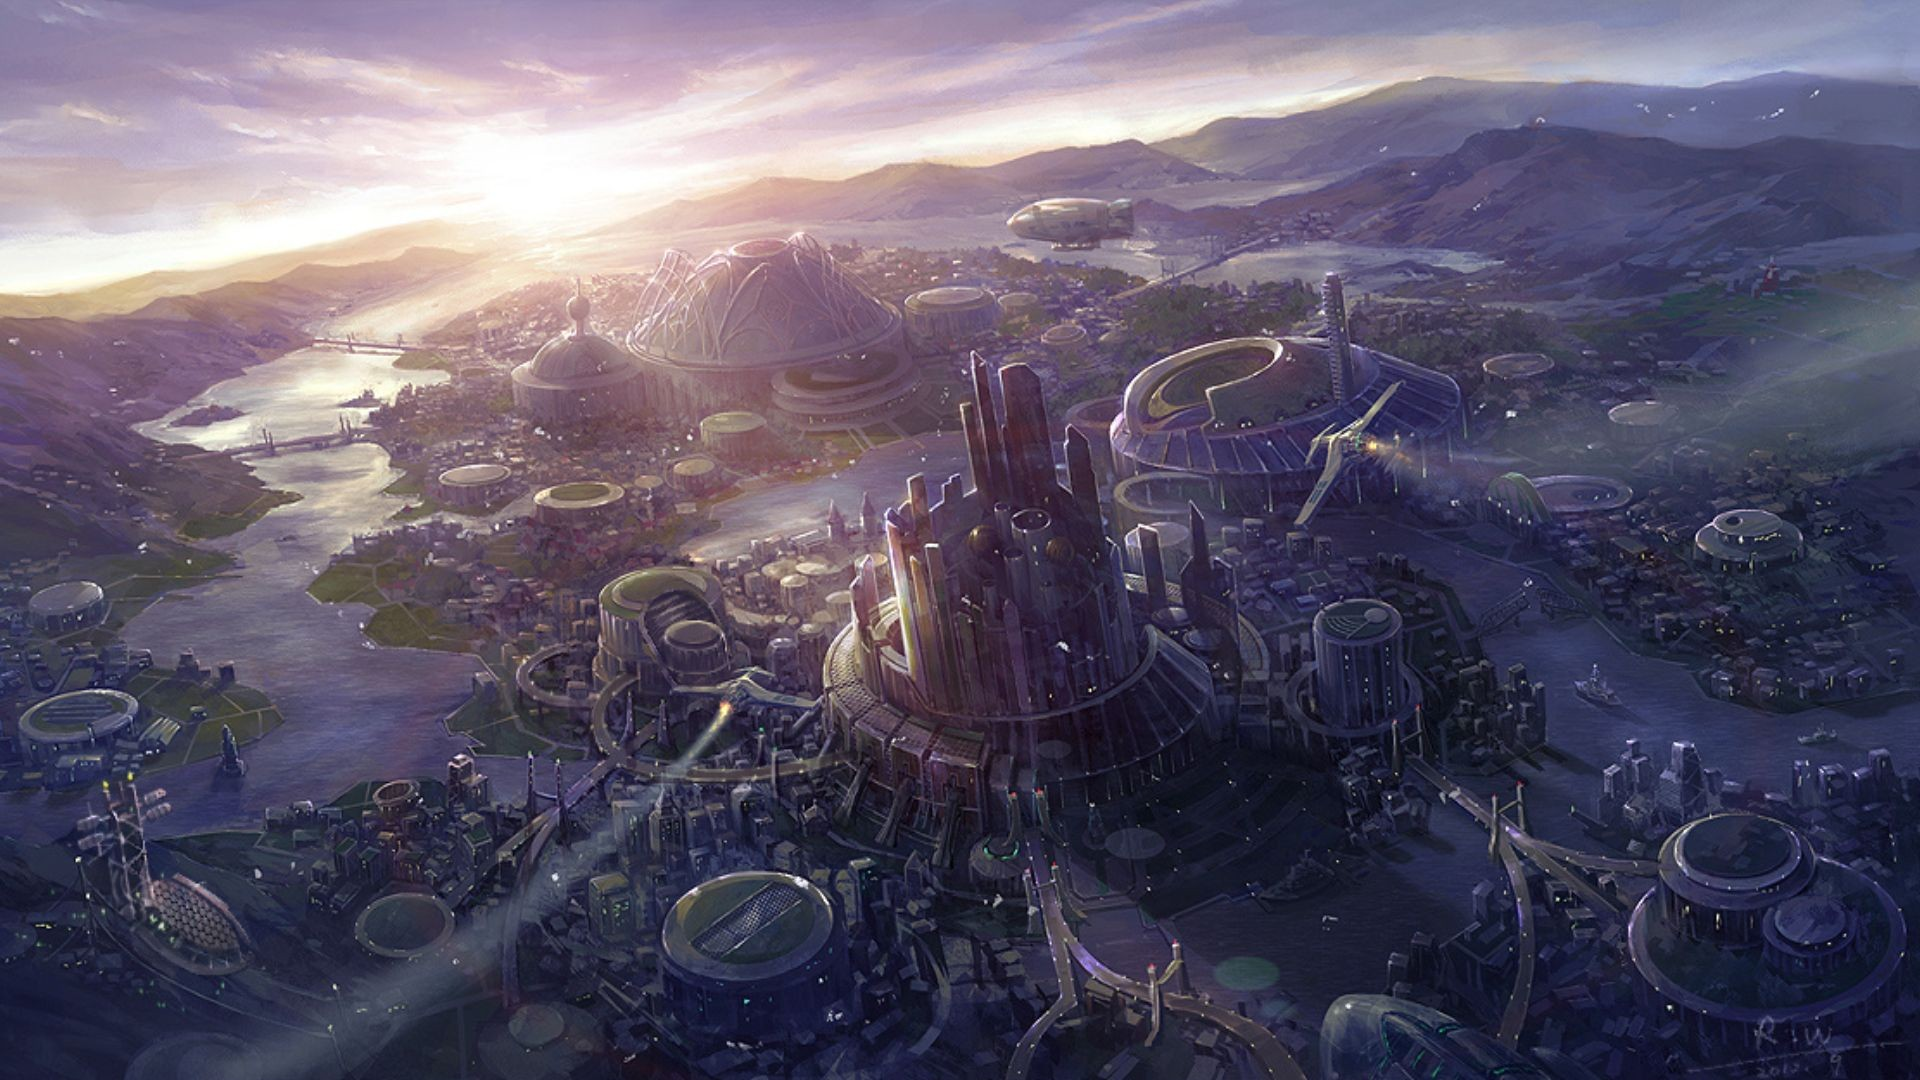 World Wallpaper Sci Fi Wallpaper: Landscape Full HD Wallpaper And Background Image